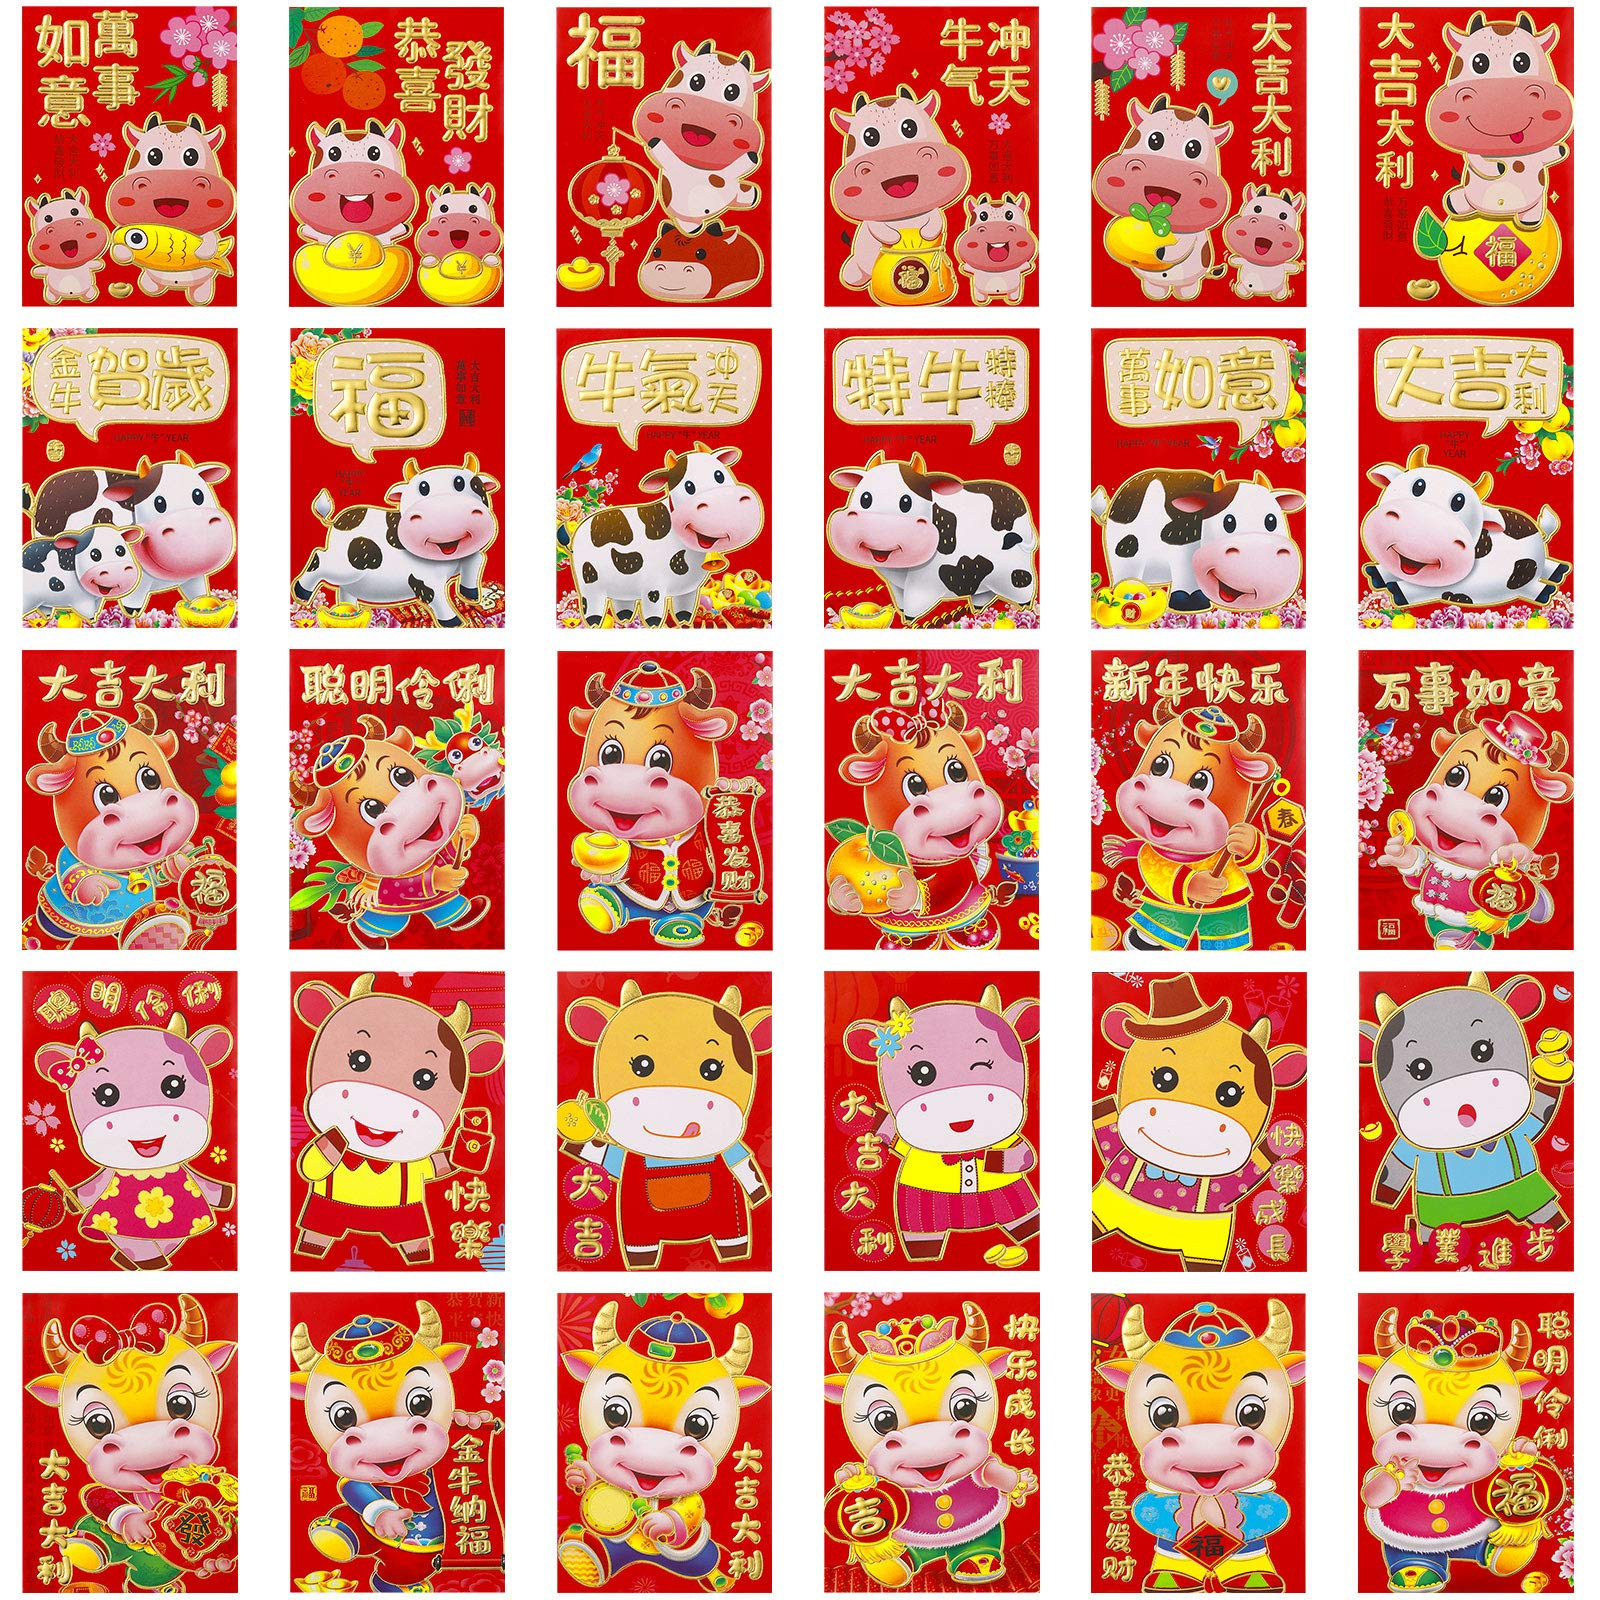 60 Pieces Chinese New Year Red Envelopes Red Packet Envelopes 2021 Chinese Ox Year Hong Bao Lucky Money Pouches for 2021 Spring Festival Wedding, 30 Designs, 3.2 x 4.5 Inches